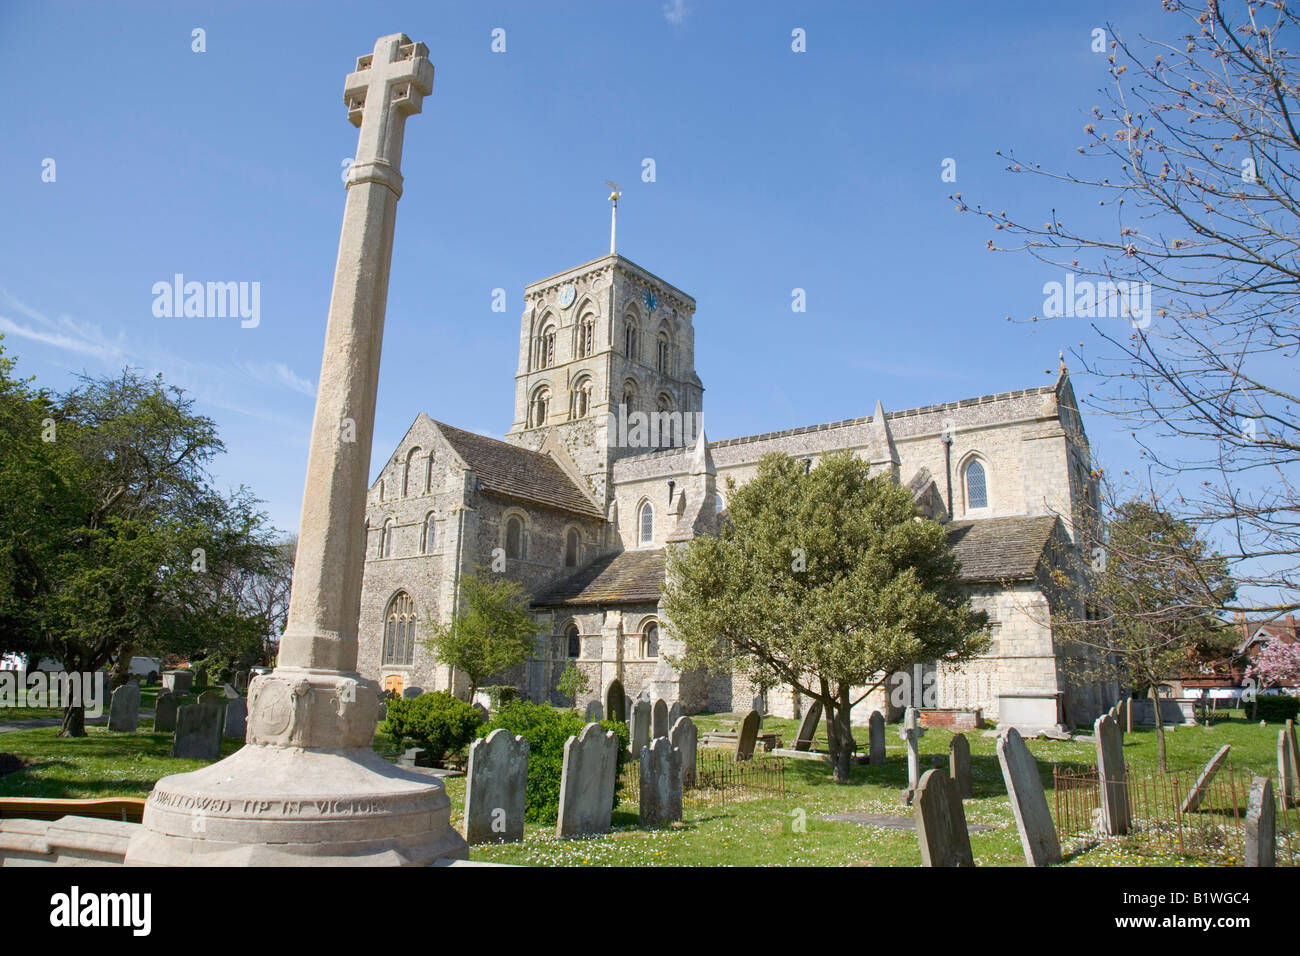 ENGLAND West Sussex Shoreham-by-Sea - Stock Image